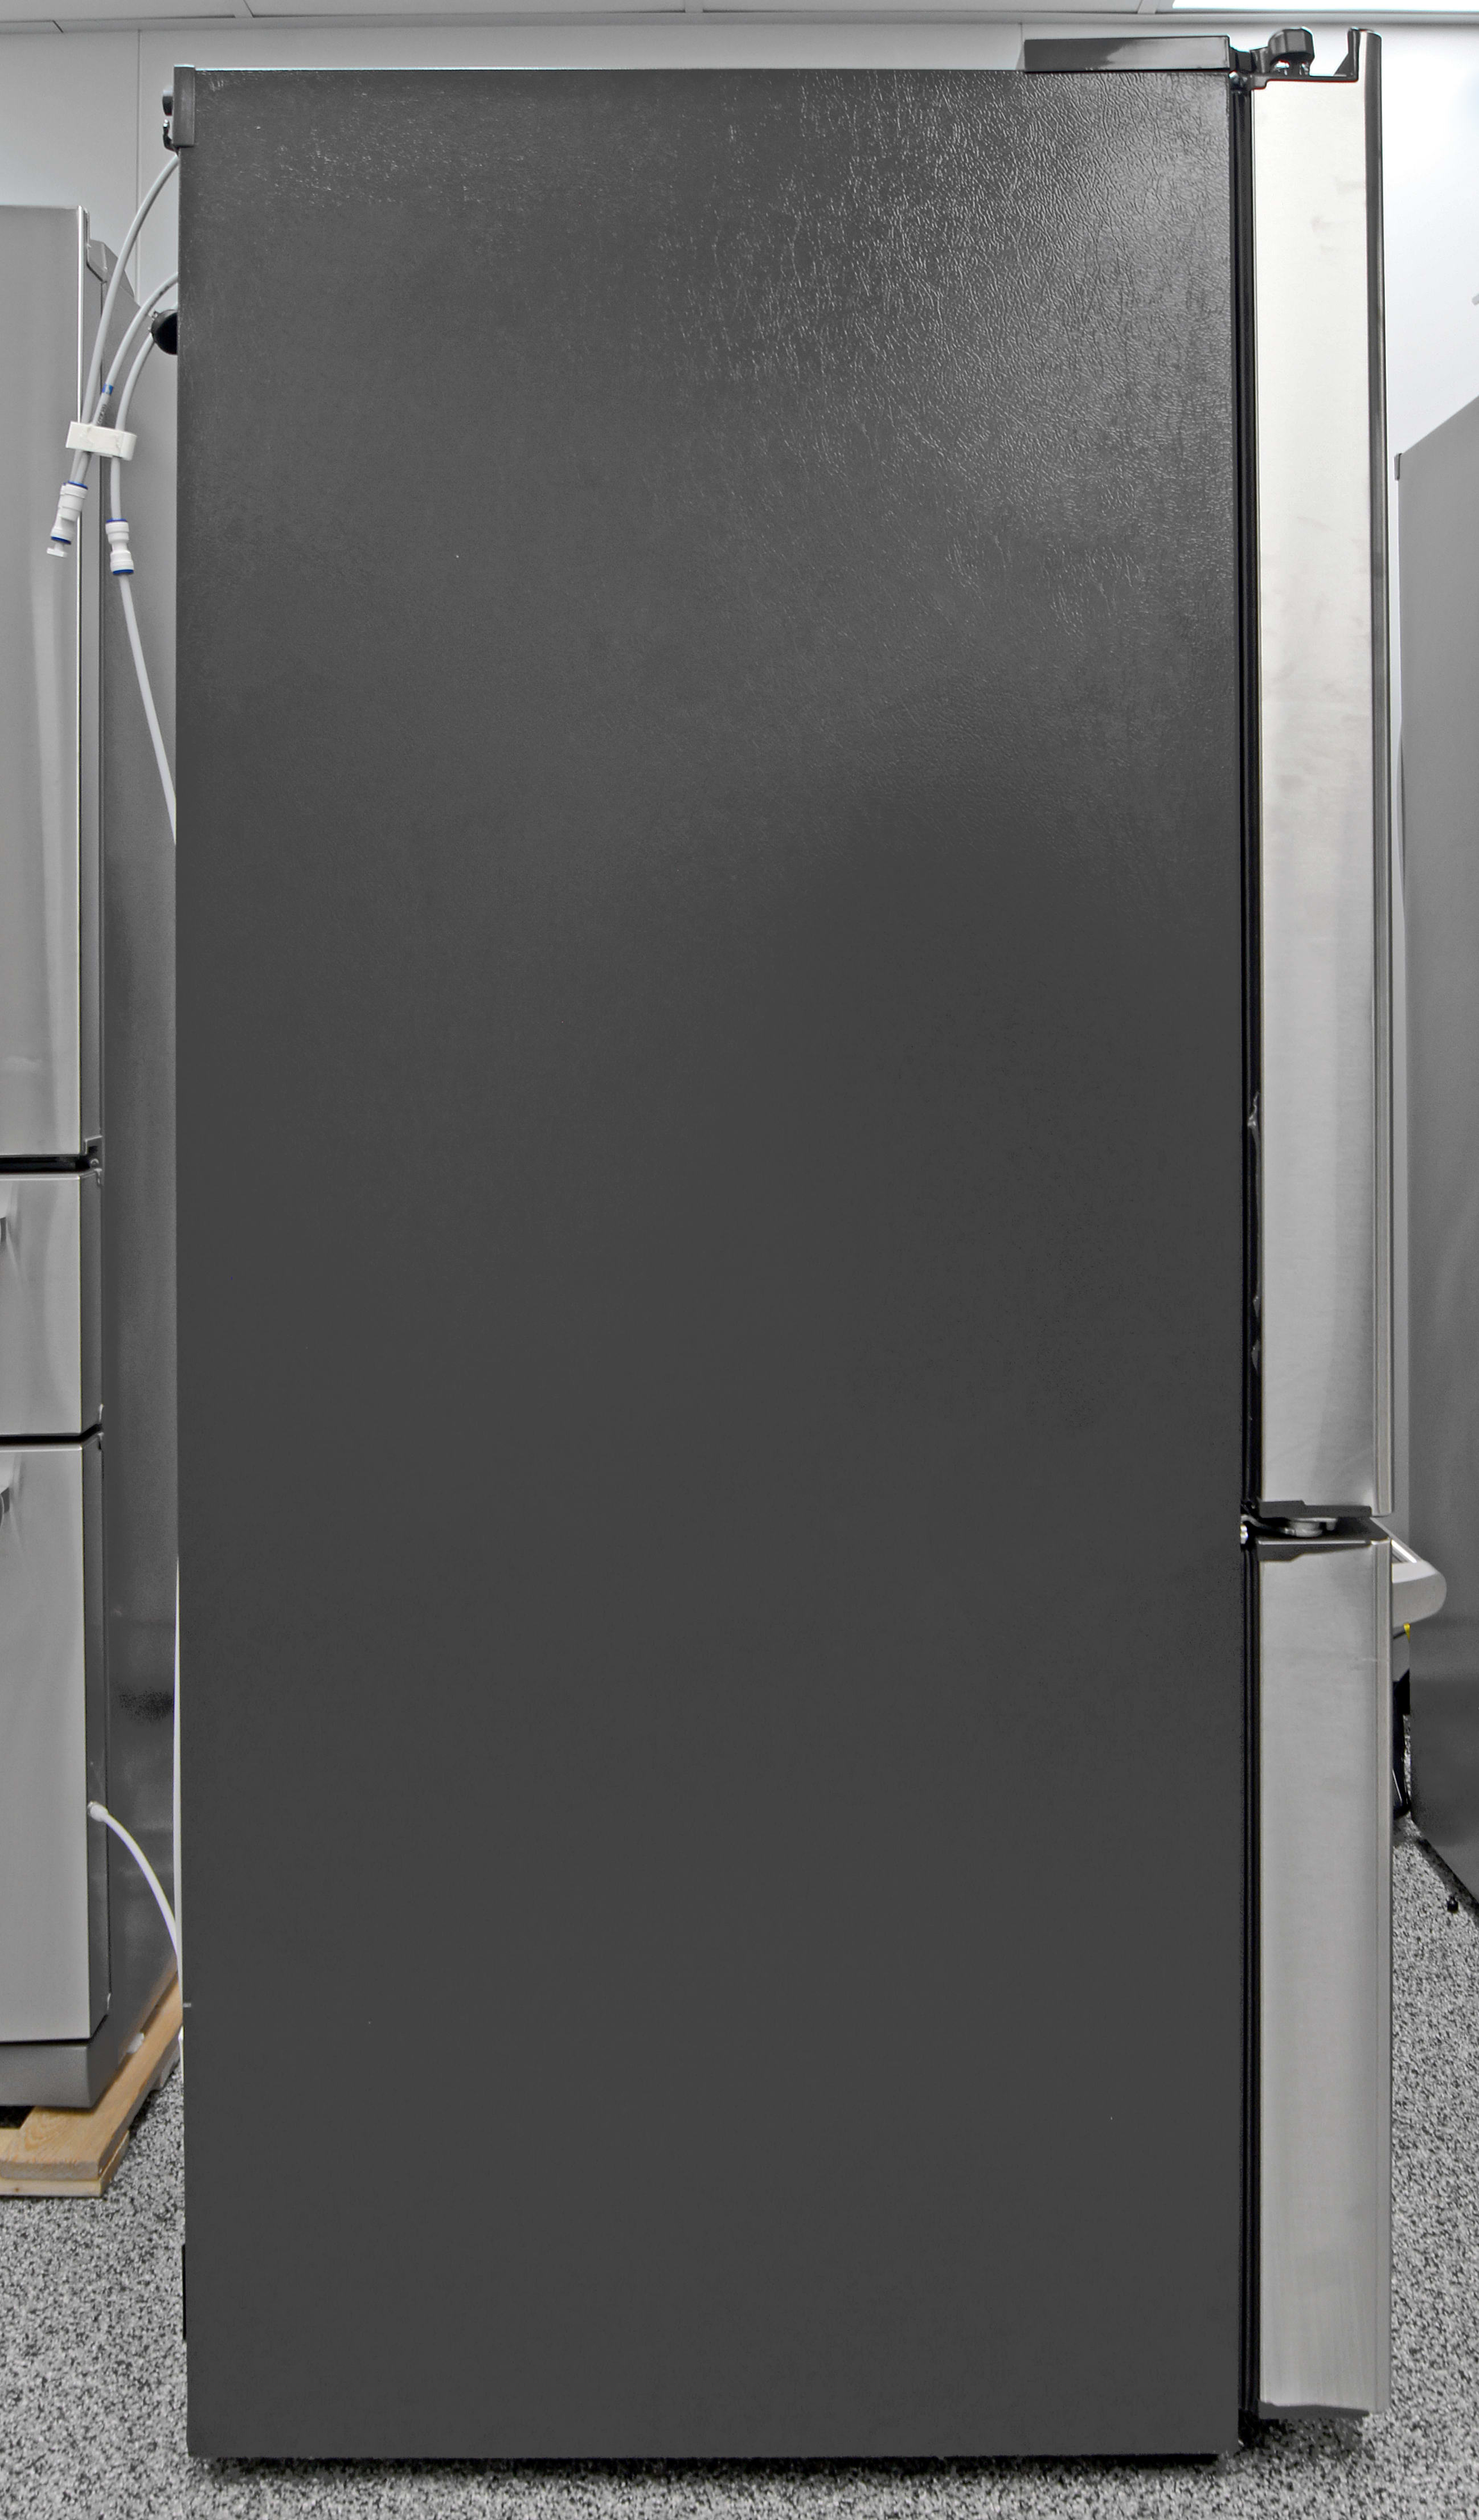 The sides of an expensive fridge normally complement the front finish, but the GE Cafe CFE28TSHSS's dark grey sides are a surprising contrast.